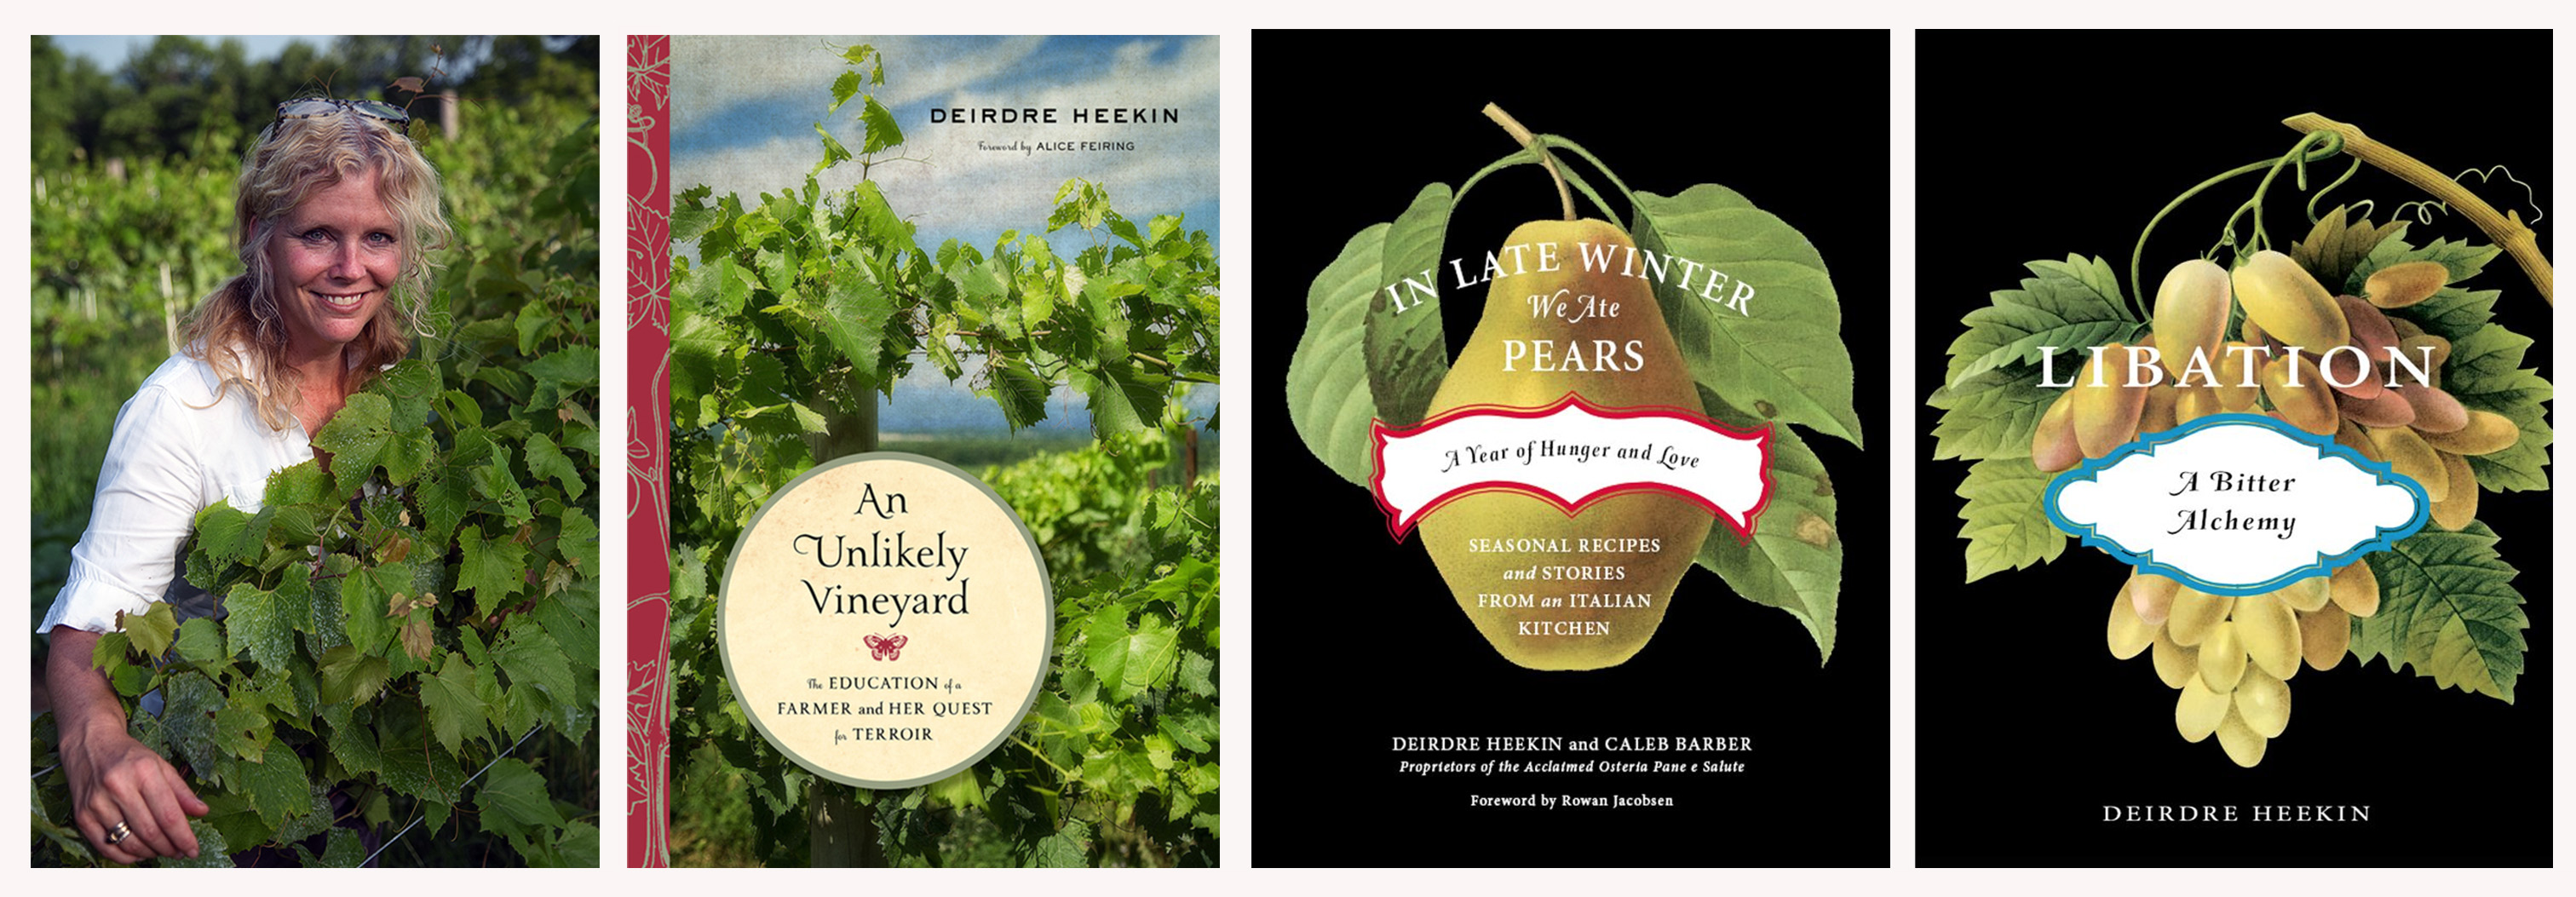 Deirdre Heekin is the author of An Unlikely Vineyard. She is the proprietor and wine director of Osteria Pane e Salute, an acclaimed restaurant and wine bar in Woodstock, Vermont. Deidre is the author of In Late Winter We Ate Pears (Chelsea Green, 2009), and she is also the author of Libation: A Bitter Alchemy (Chelsea Green, 2009) and Pane e Salute (Invisible Cities Press, 2002). Heekin and her husband live on a small farm in Barnard, Vermont, where they grow both the vegetables for their restaurant and natural wines and ciders for their la garagista label.